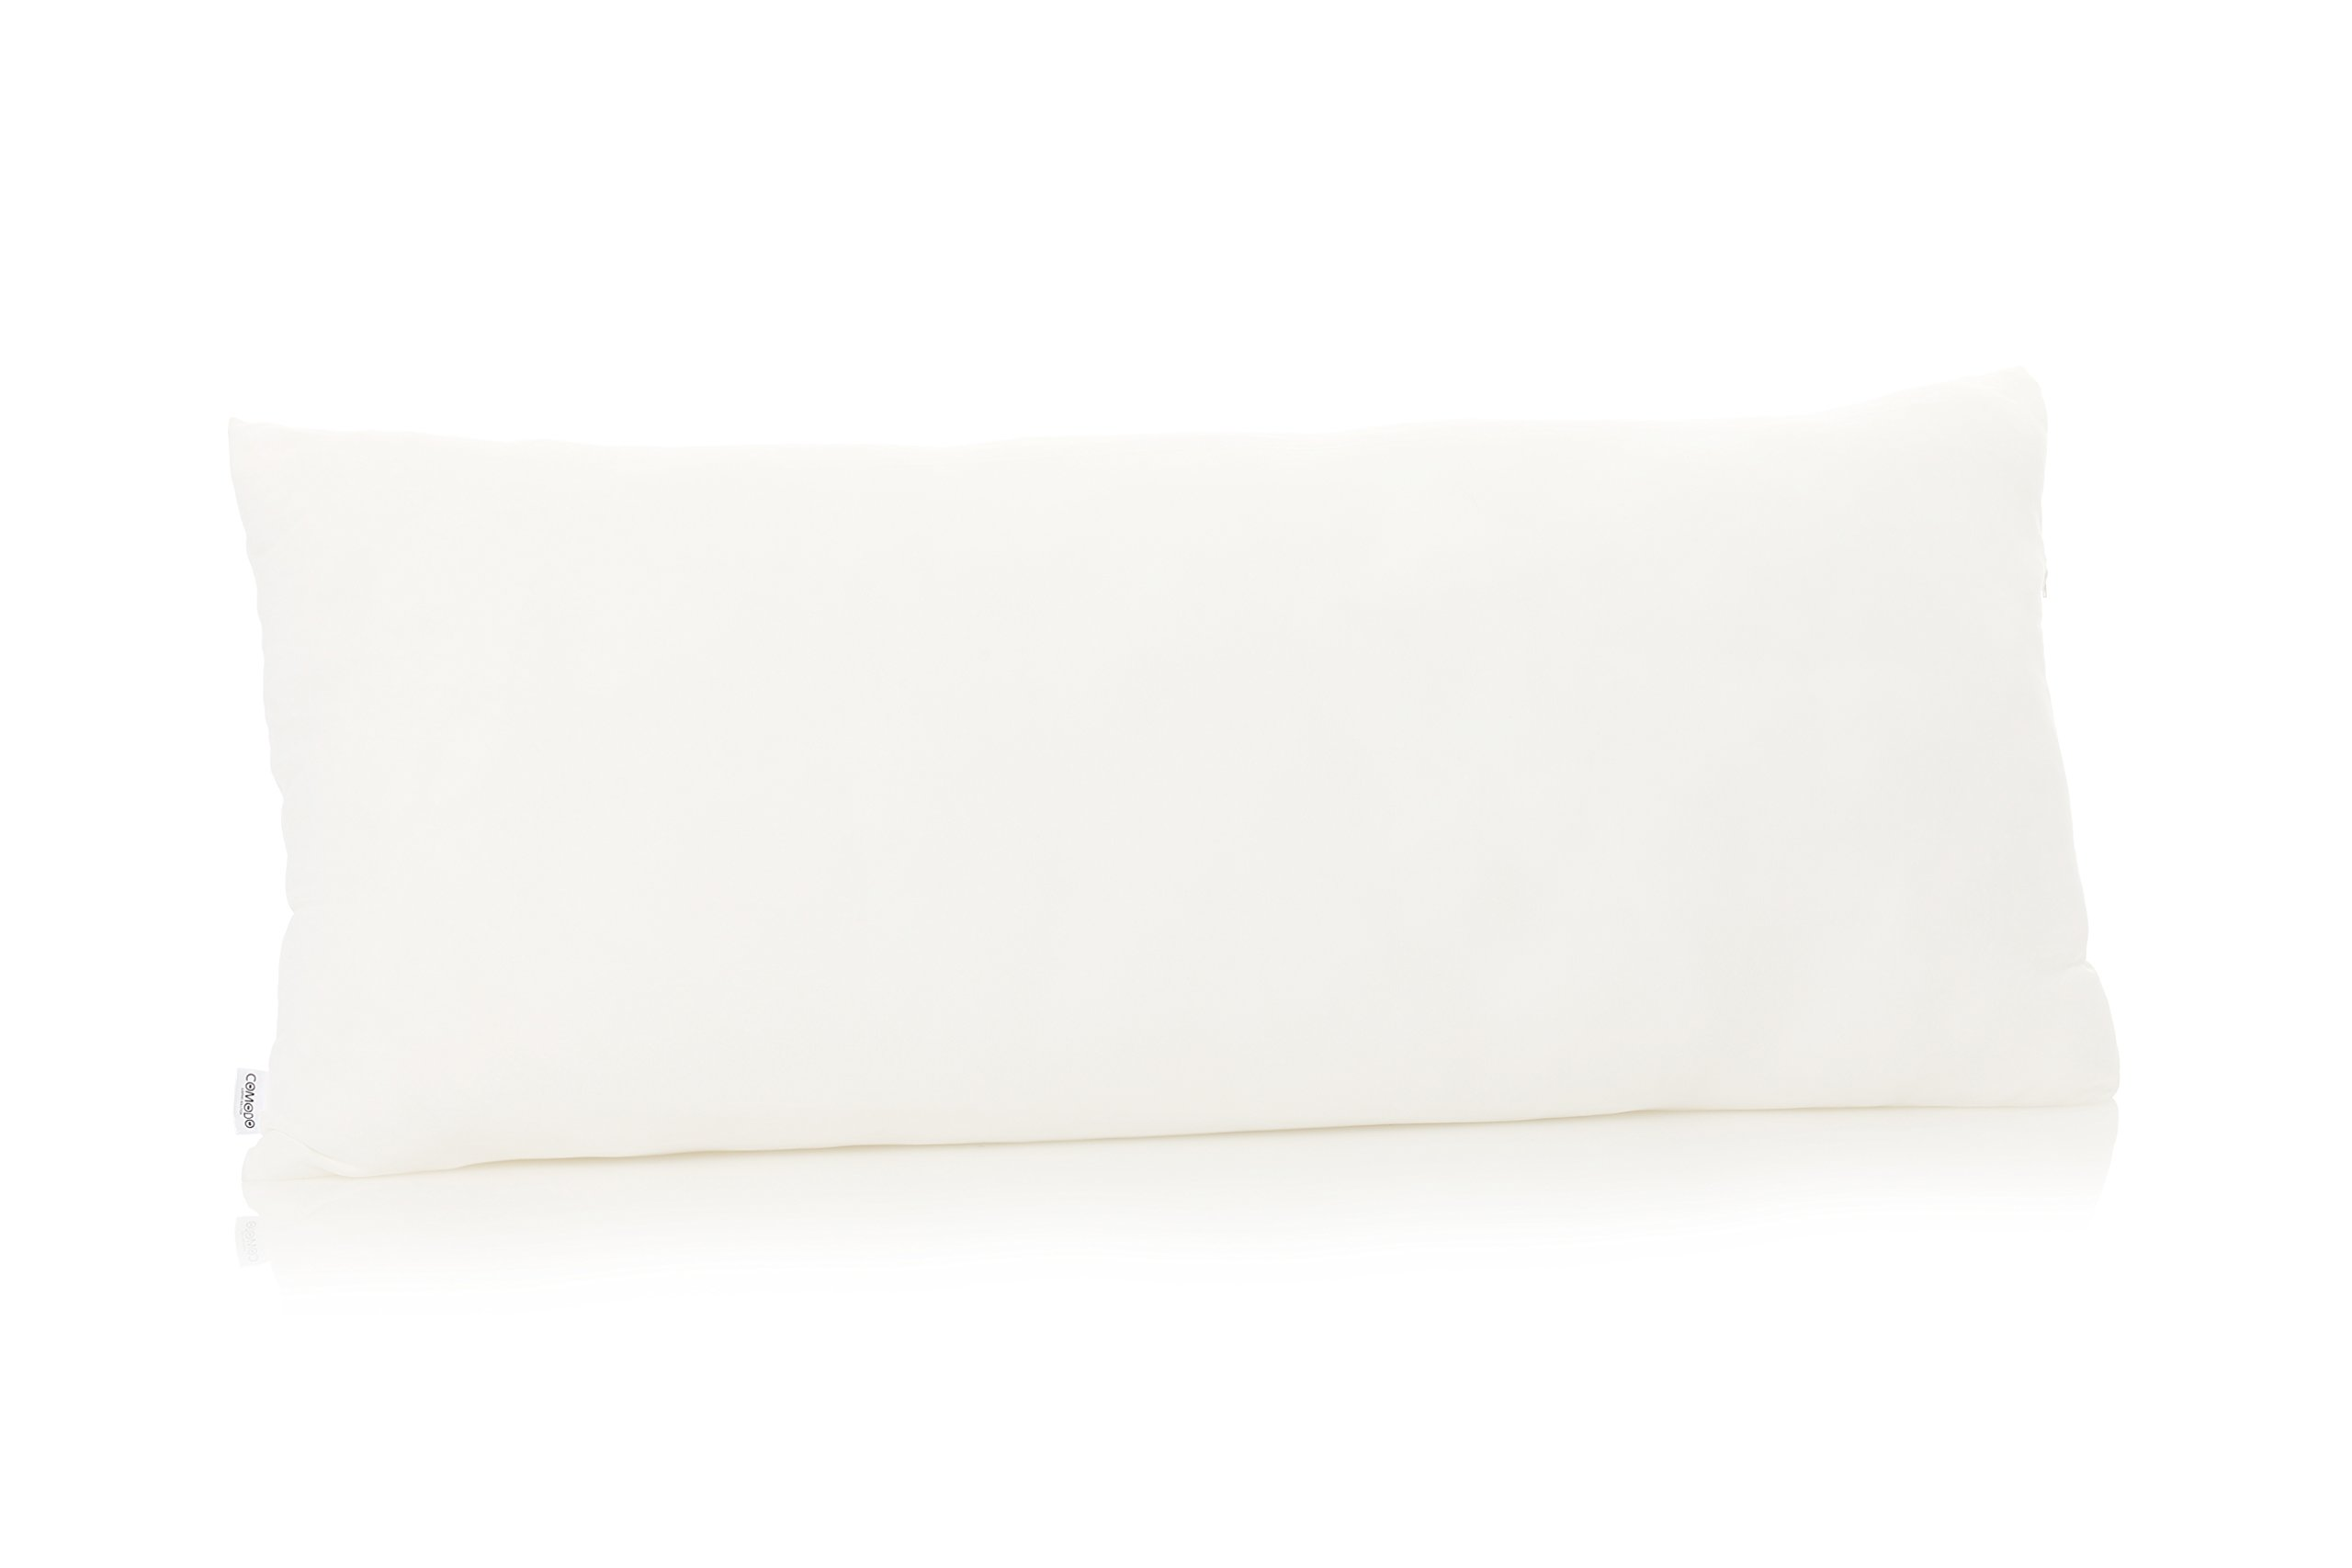 COMODO Original Pillows King Size Pillow Insert CMM2040 Proprietary Blend of Polyester And Silicone Batting [Made in Japan] (20x40)